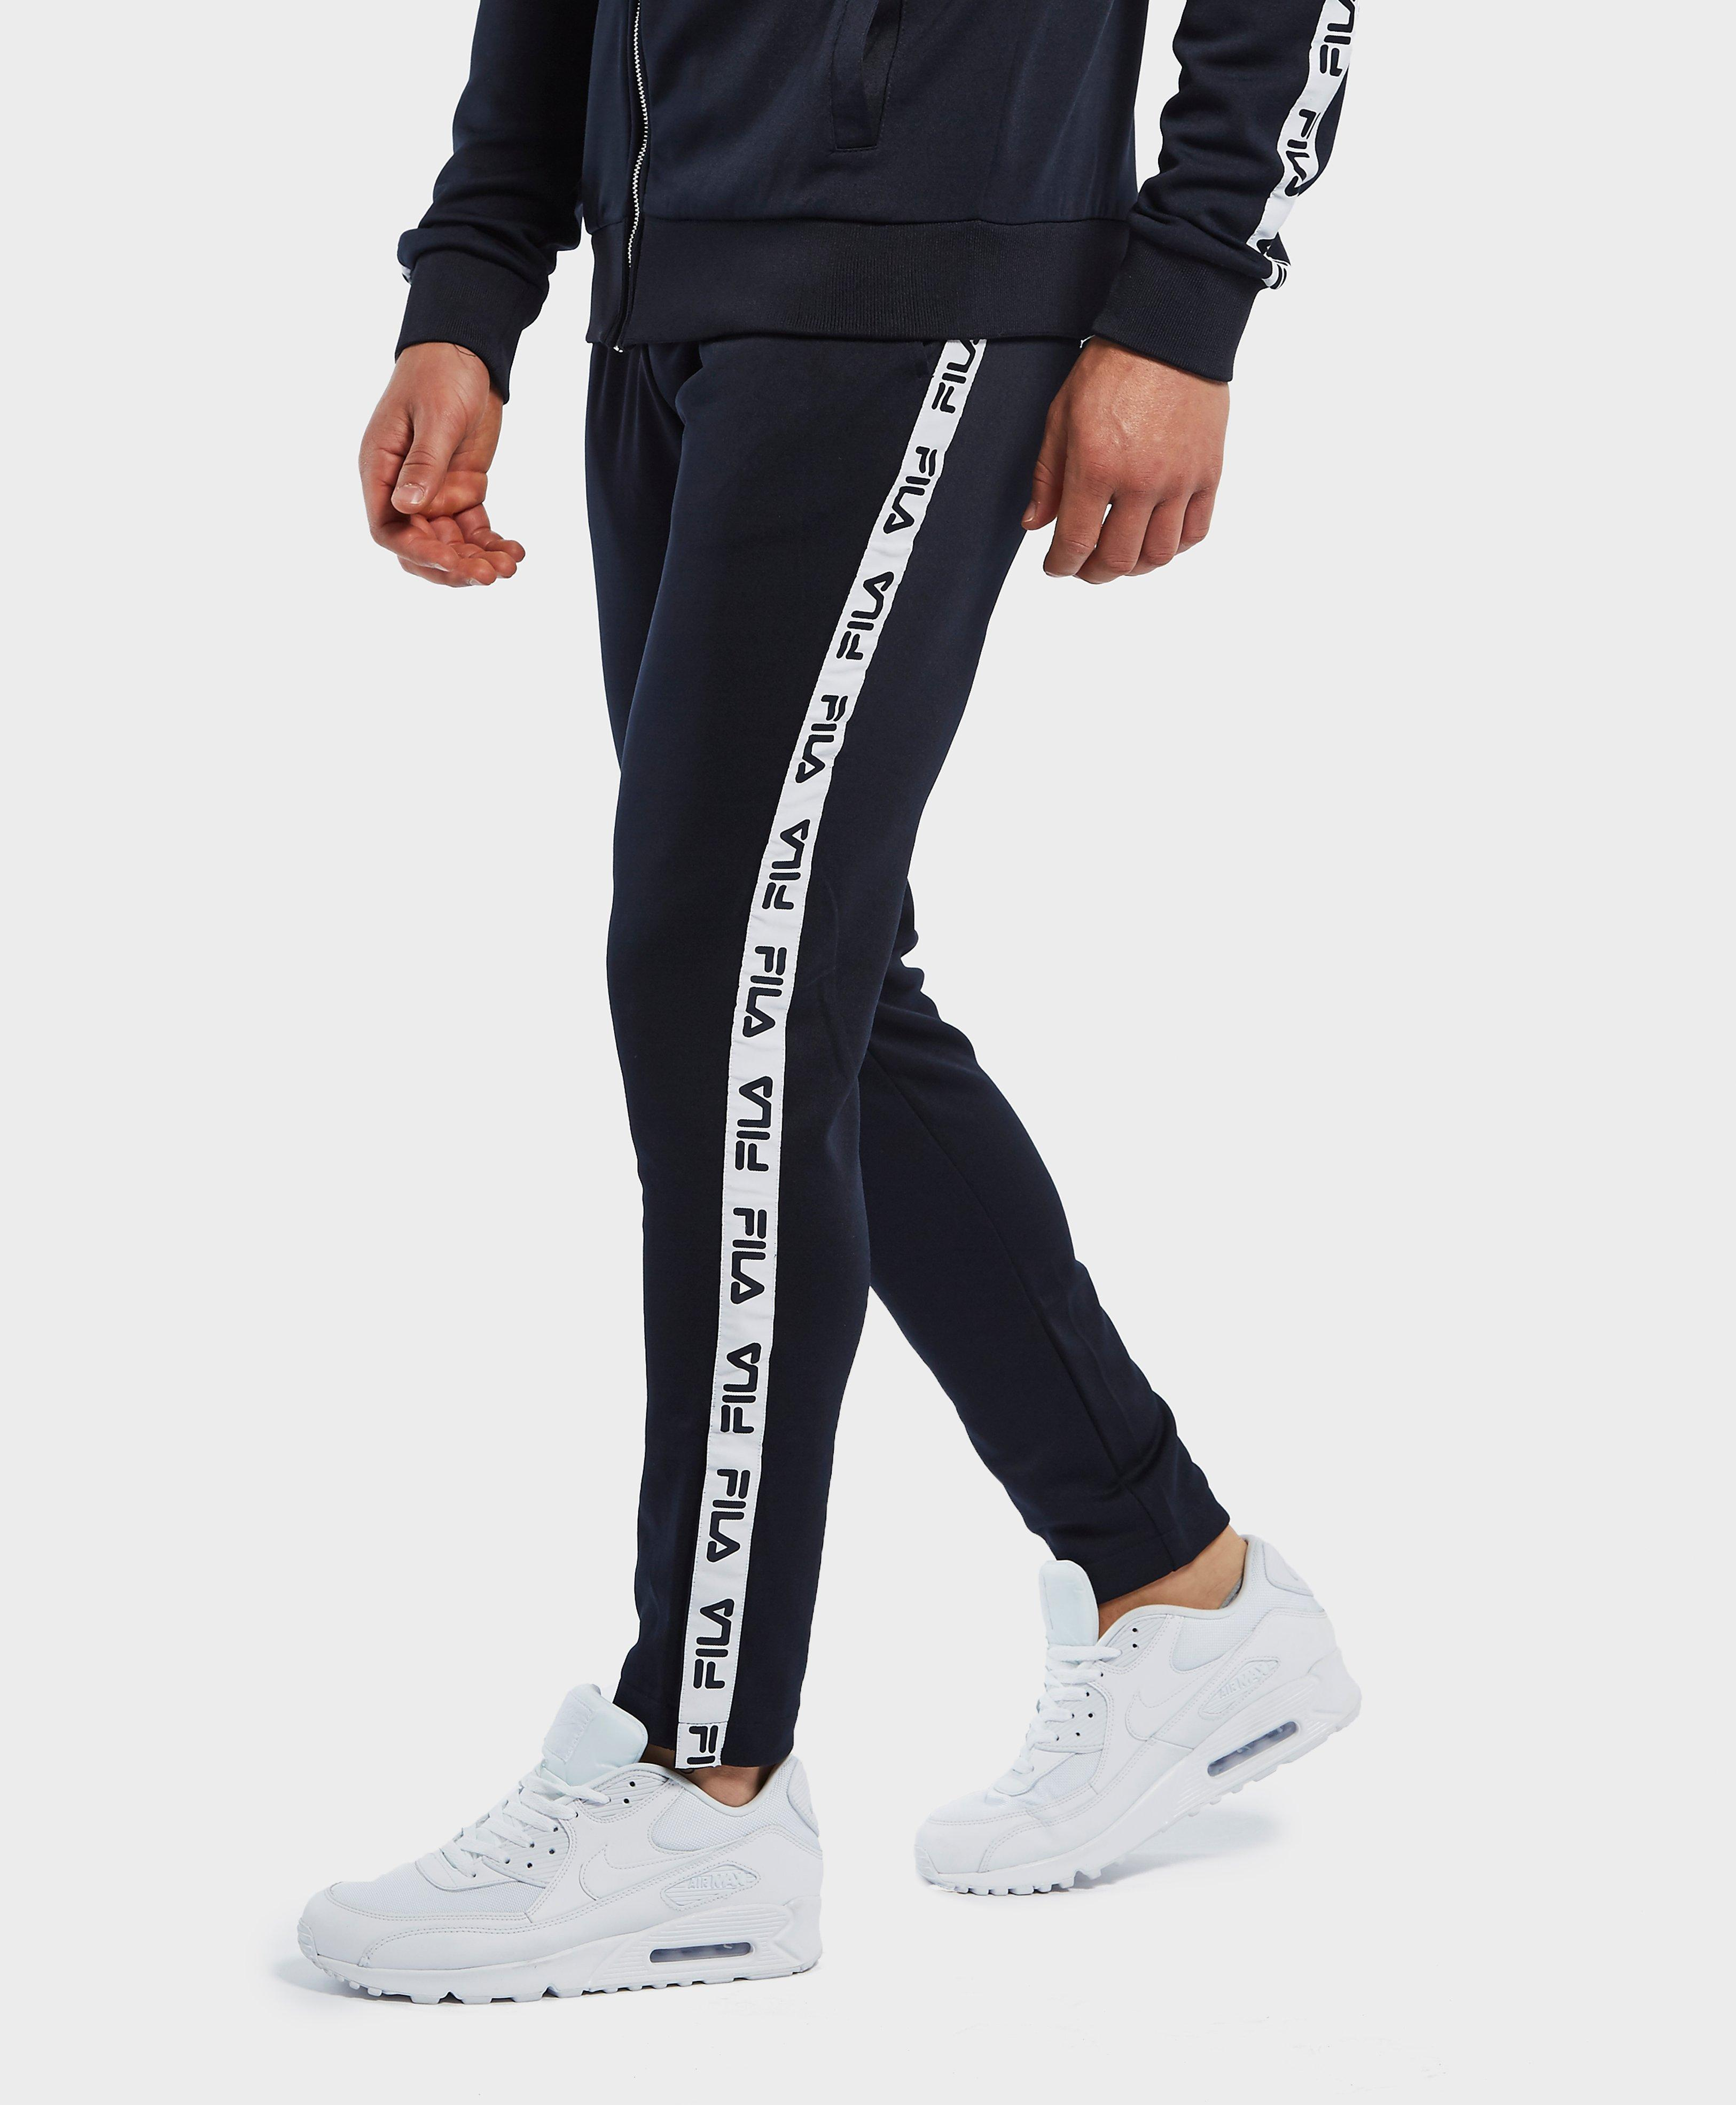 159410f1c28071 Fila Comino Track Pants - Exclusive in Blue for Men - Lyst